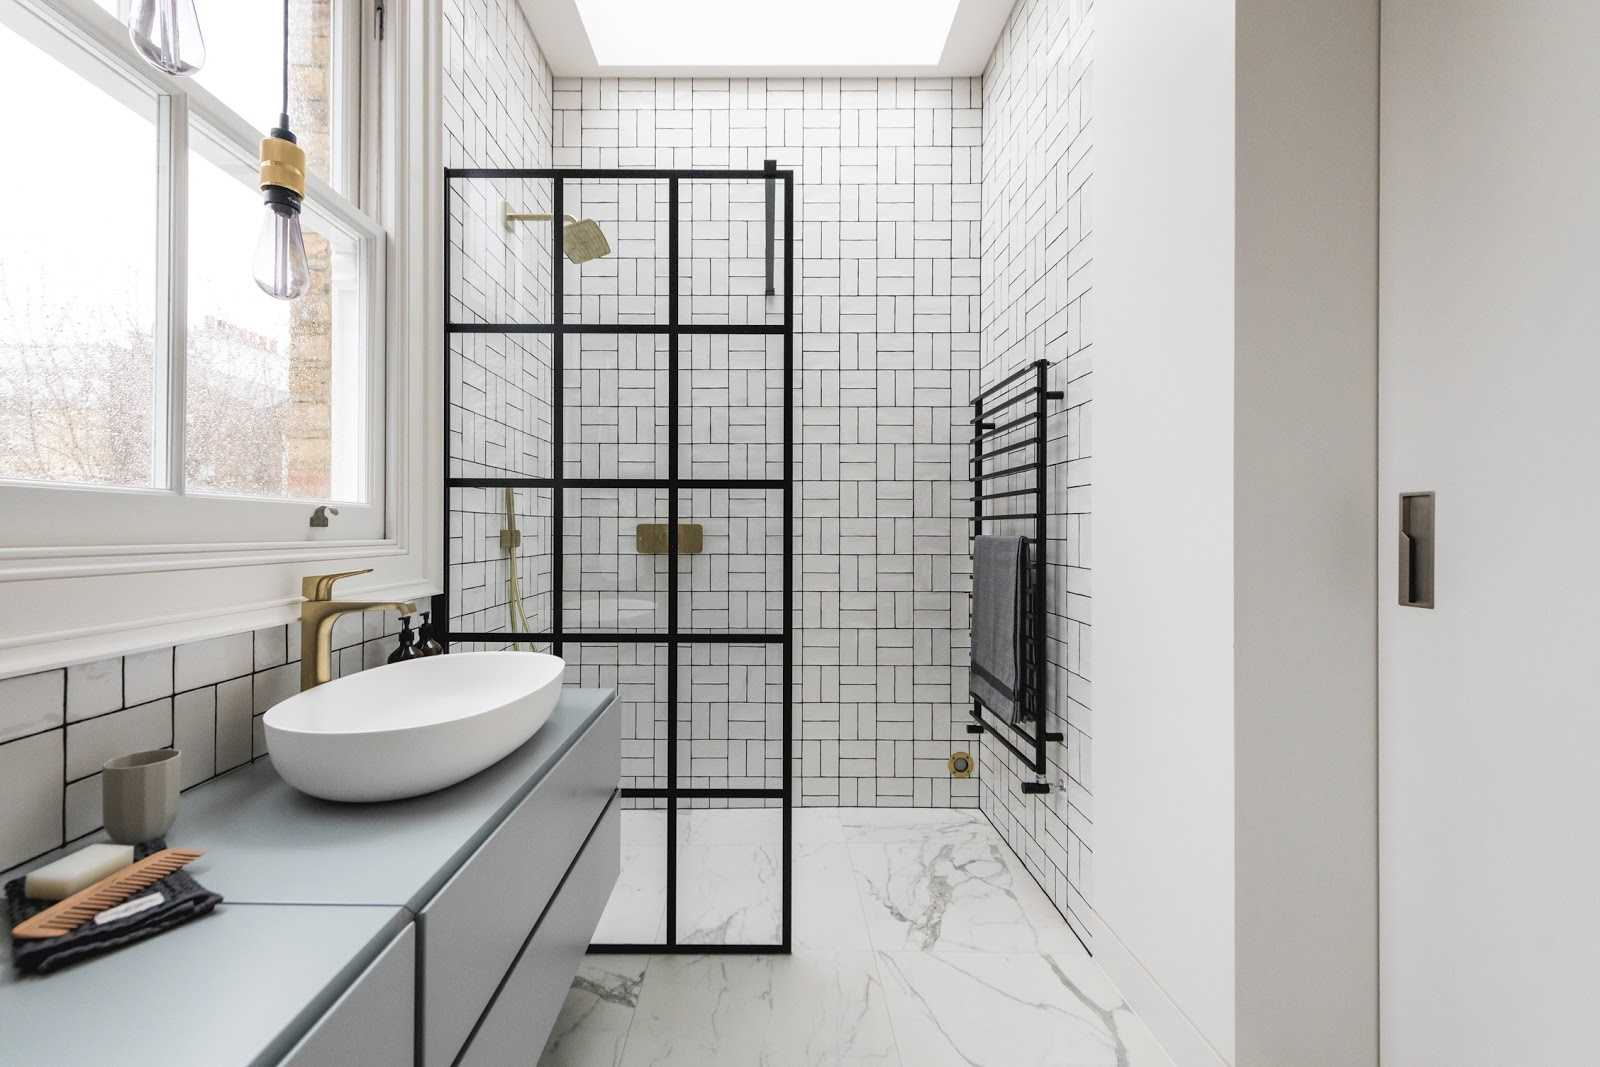 Hometriangle Design Tips. Easy To Clean Bathroom And Types Of Wall-Mounted Faucets